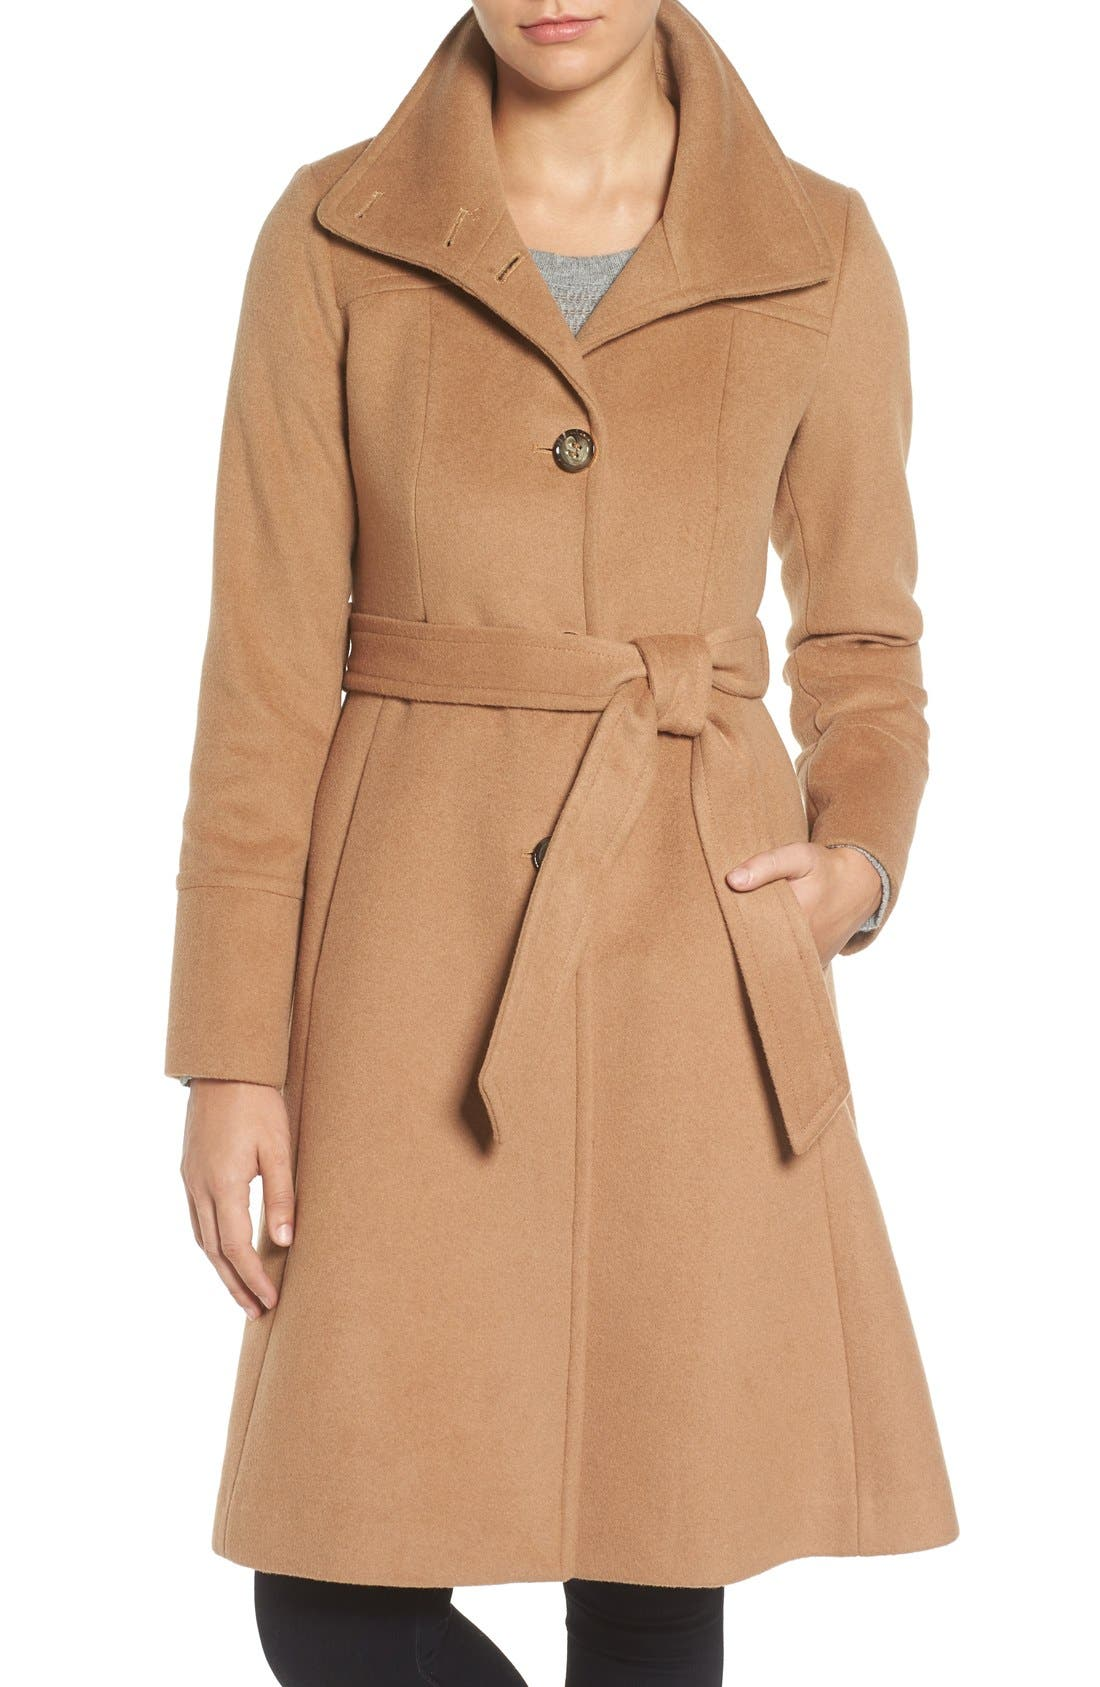 ELIZA J Luxe Wool Blend Belted Long A-Line Coat